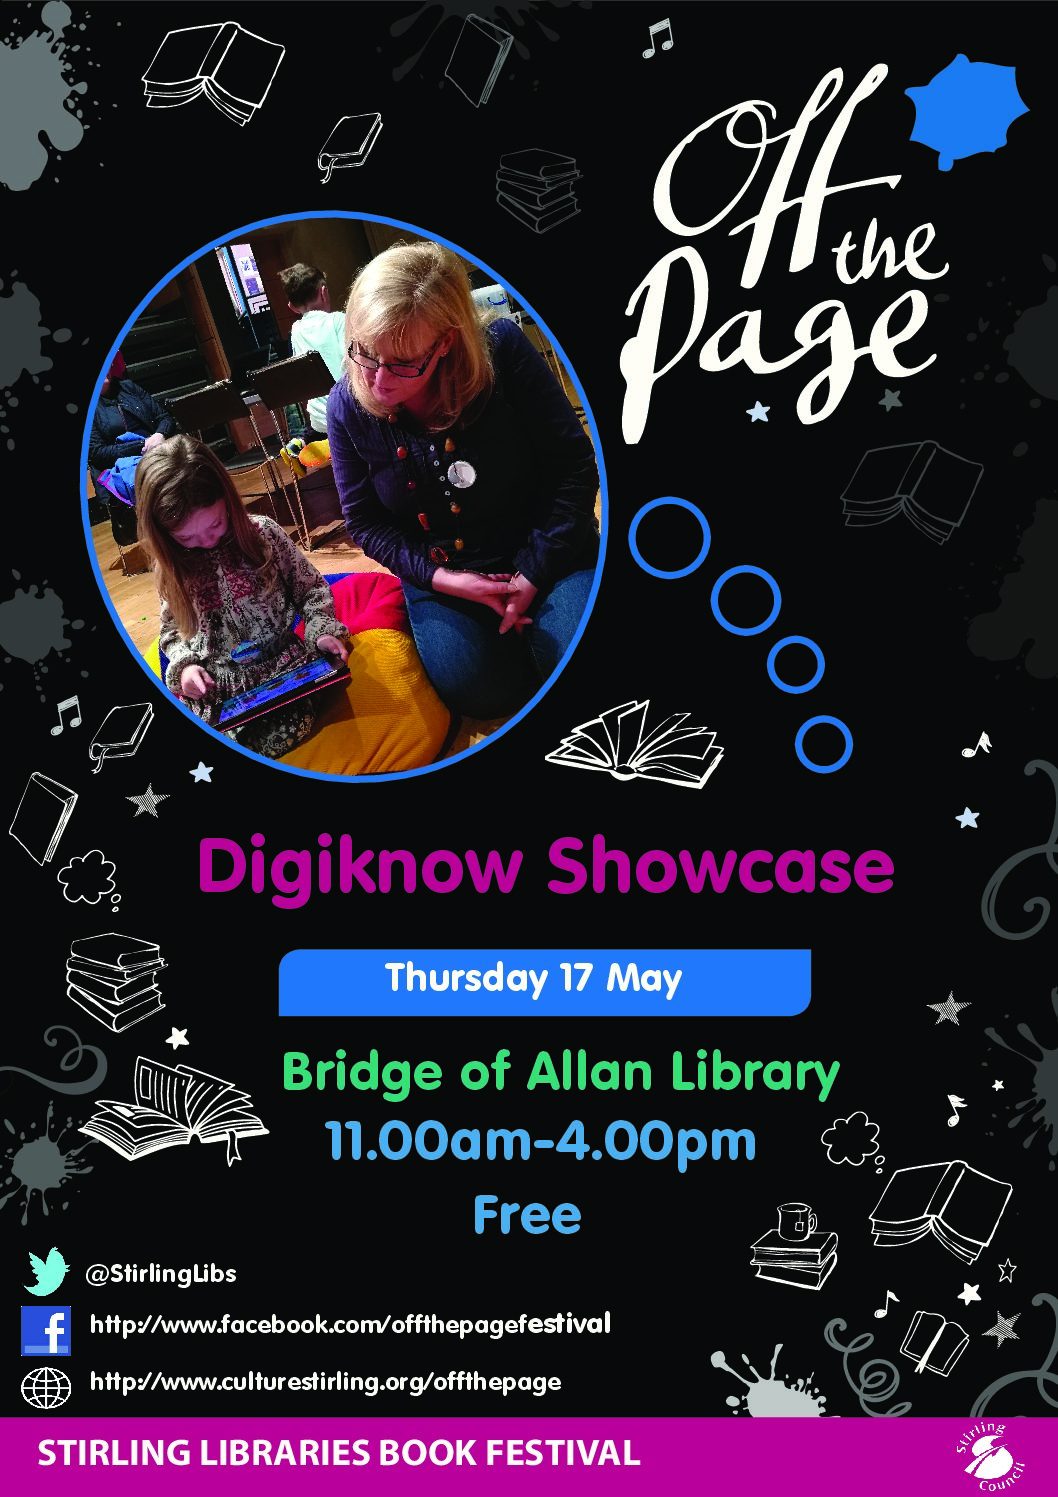 Digiknow Showcase